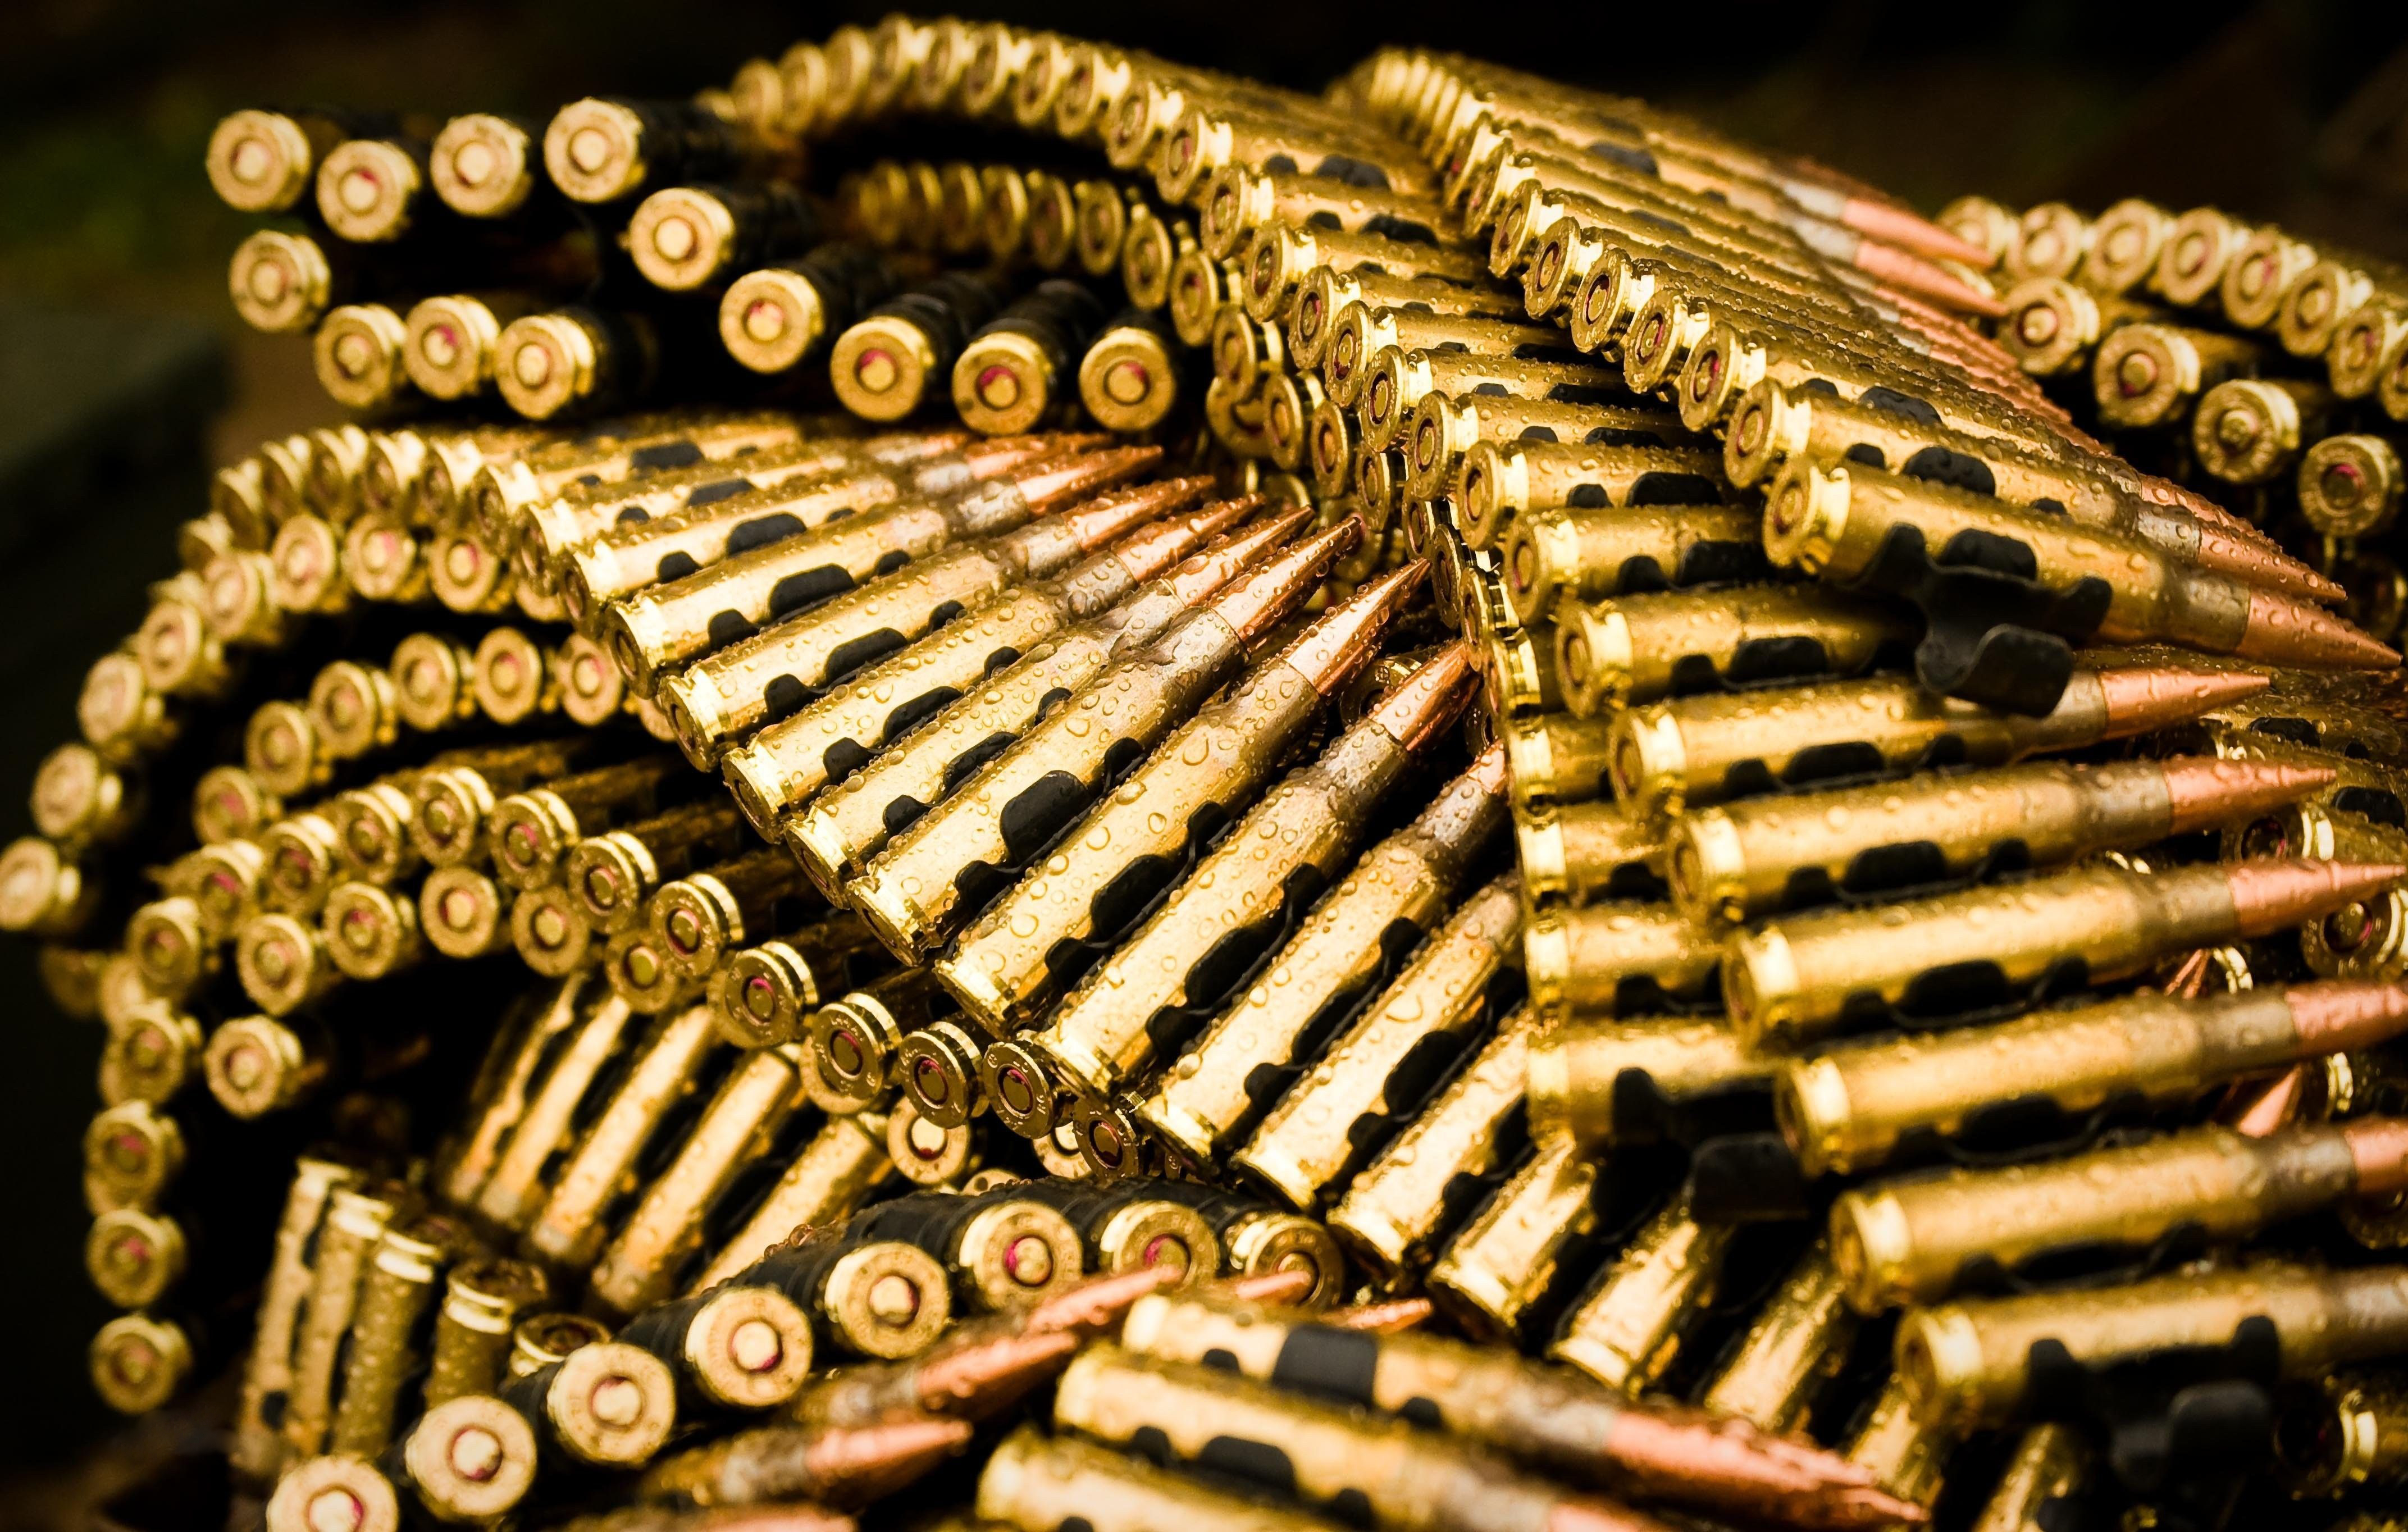 Bullet Wallpapers Weapons Hq Bullet Pictures 4k